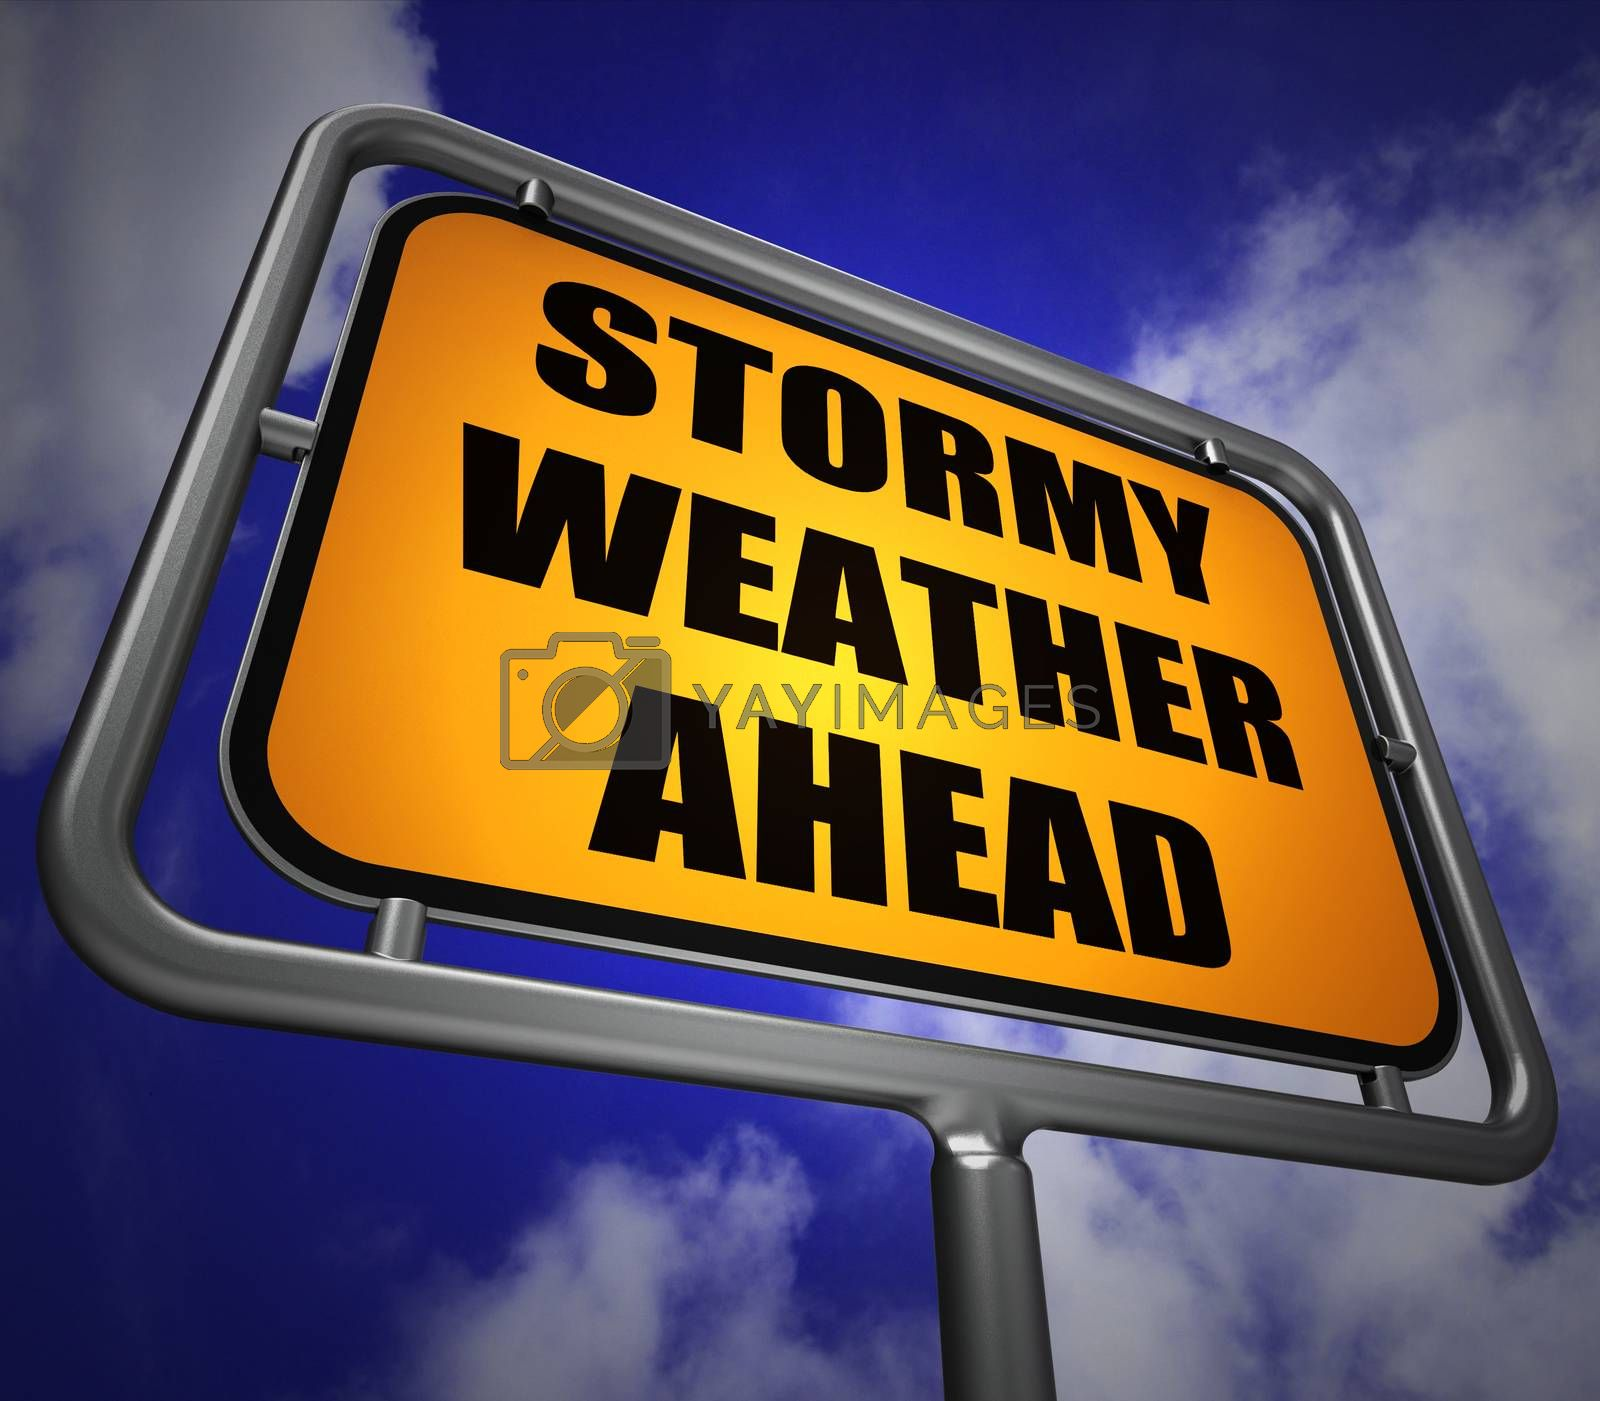 Stormy Weather Ahead Signpost Shows Storm Warning or Danger by stuartmiles